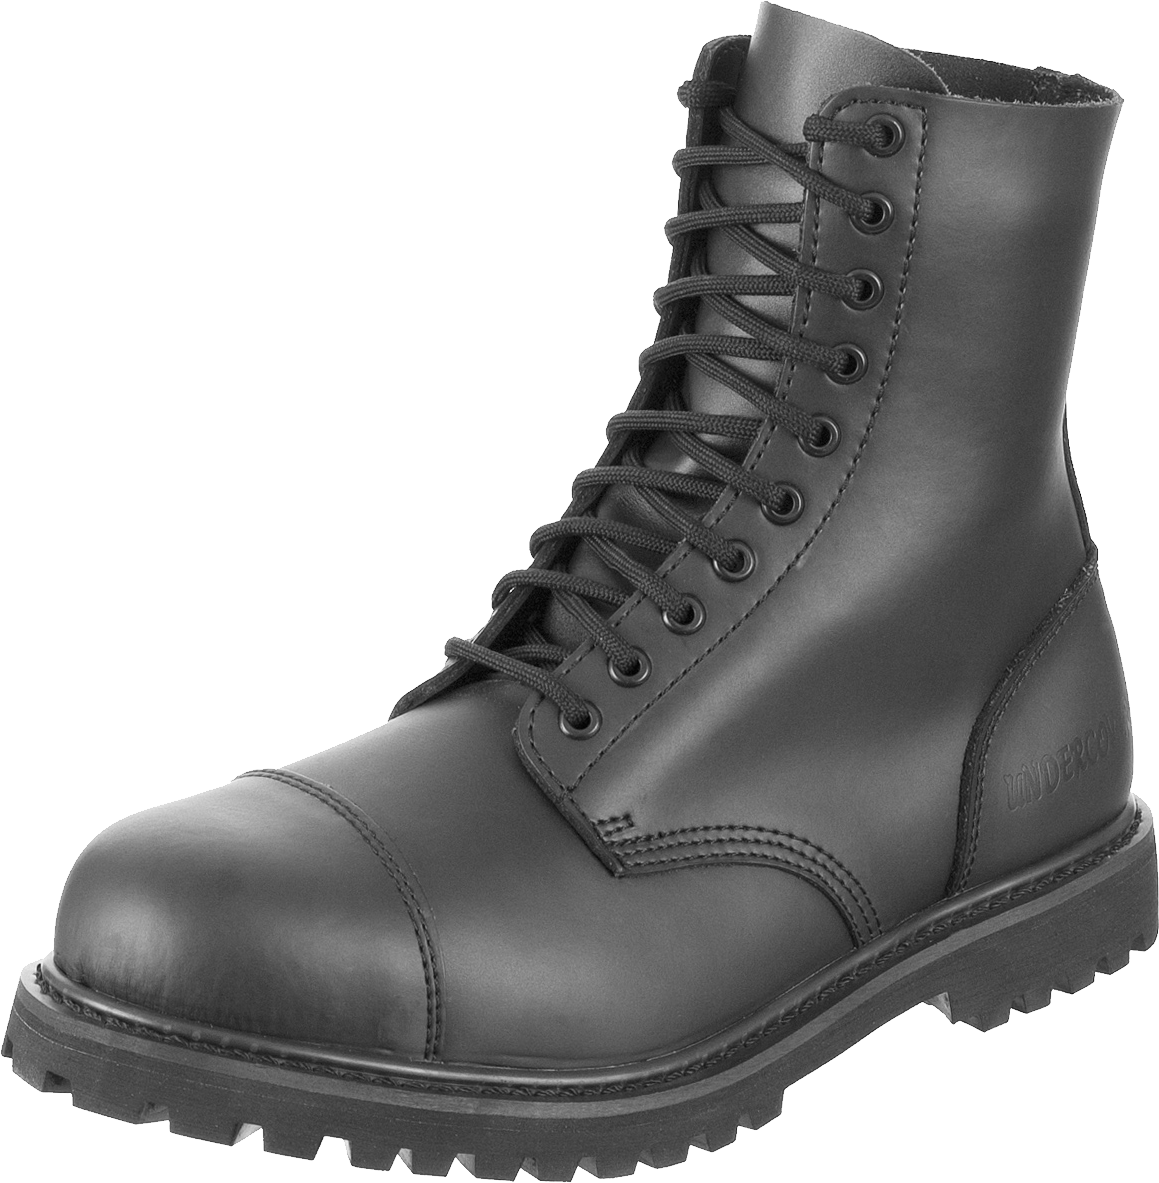 picture royalty free library Boots clipart motorcycle boot. Combat transparent png stickpng